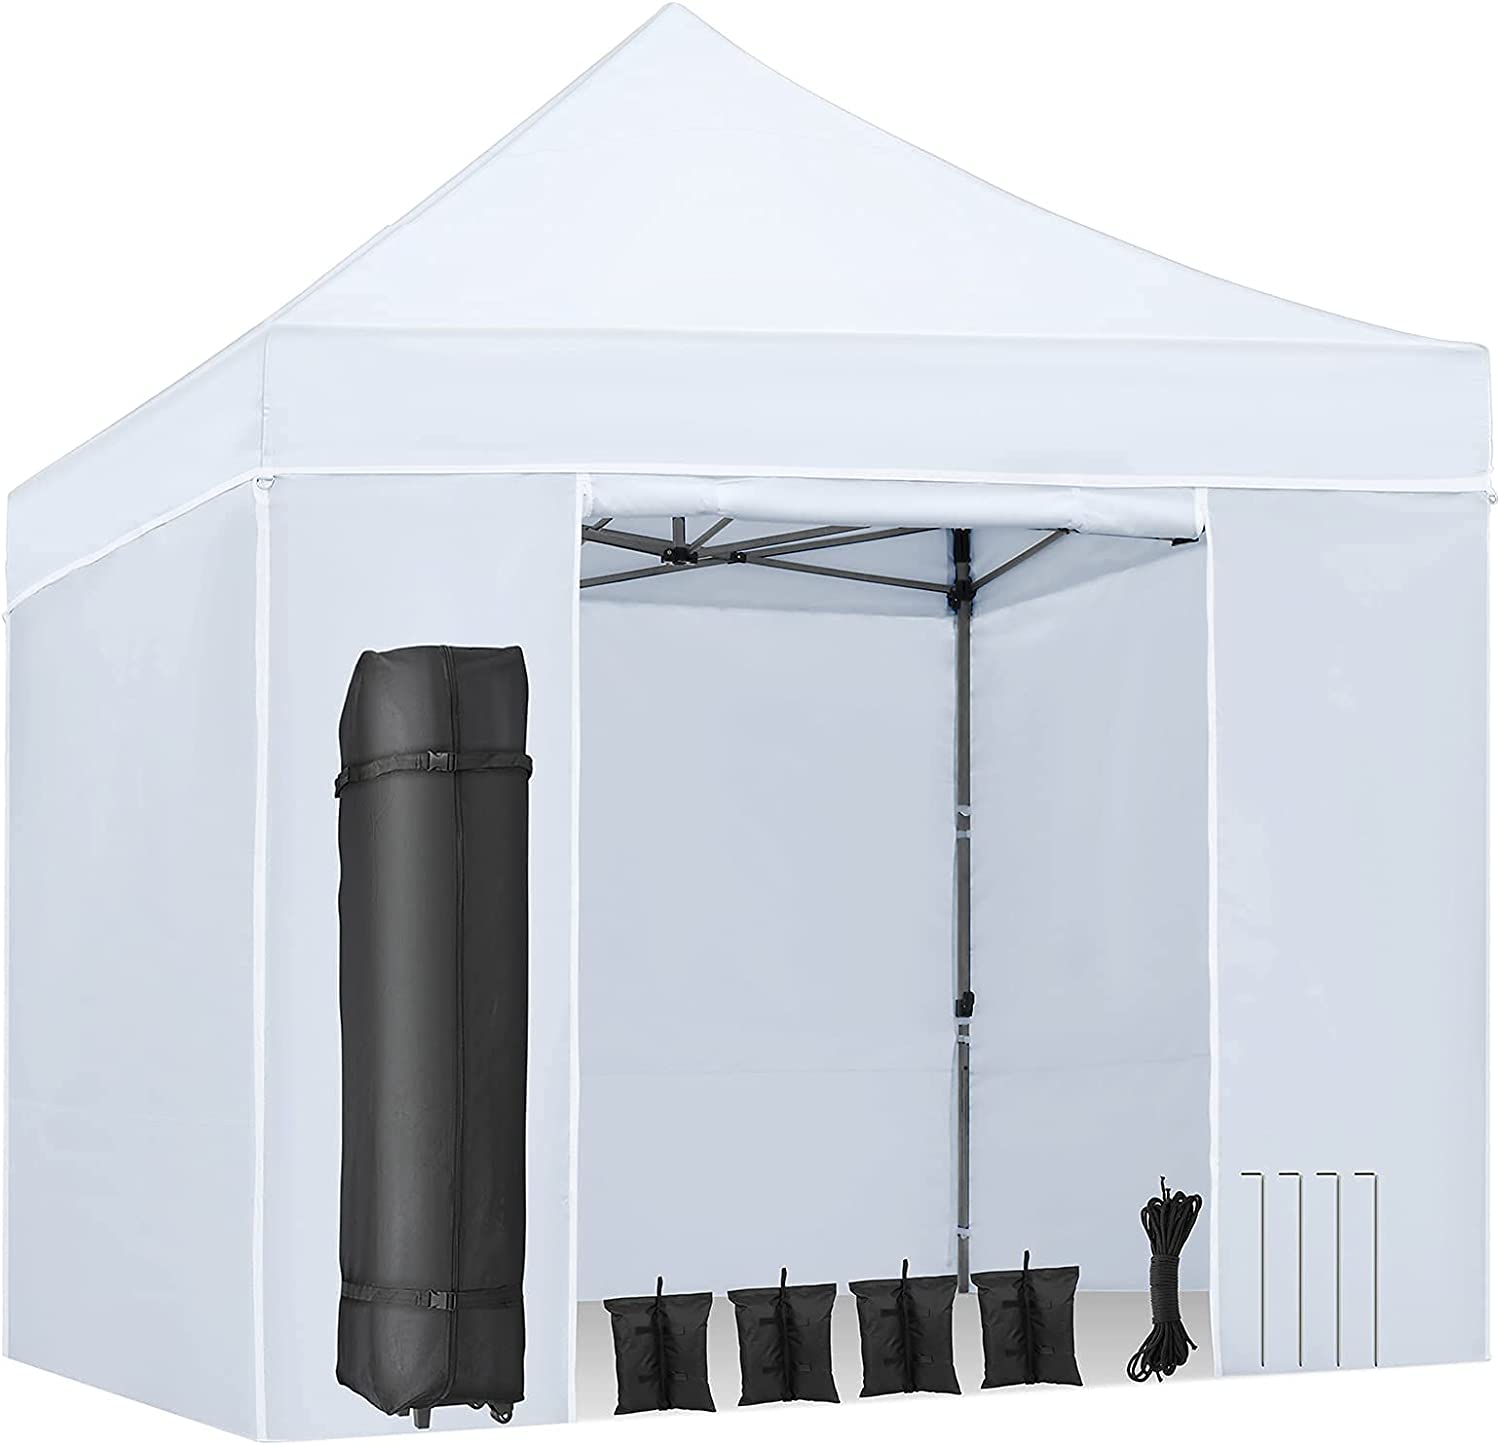 Max 47% OFF Pop-Up Canopy Tent: 10'x15' Max 46% OFF Shelter Commercial Windproof Instant